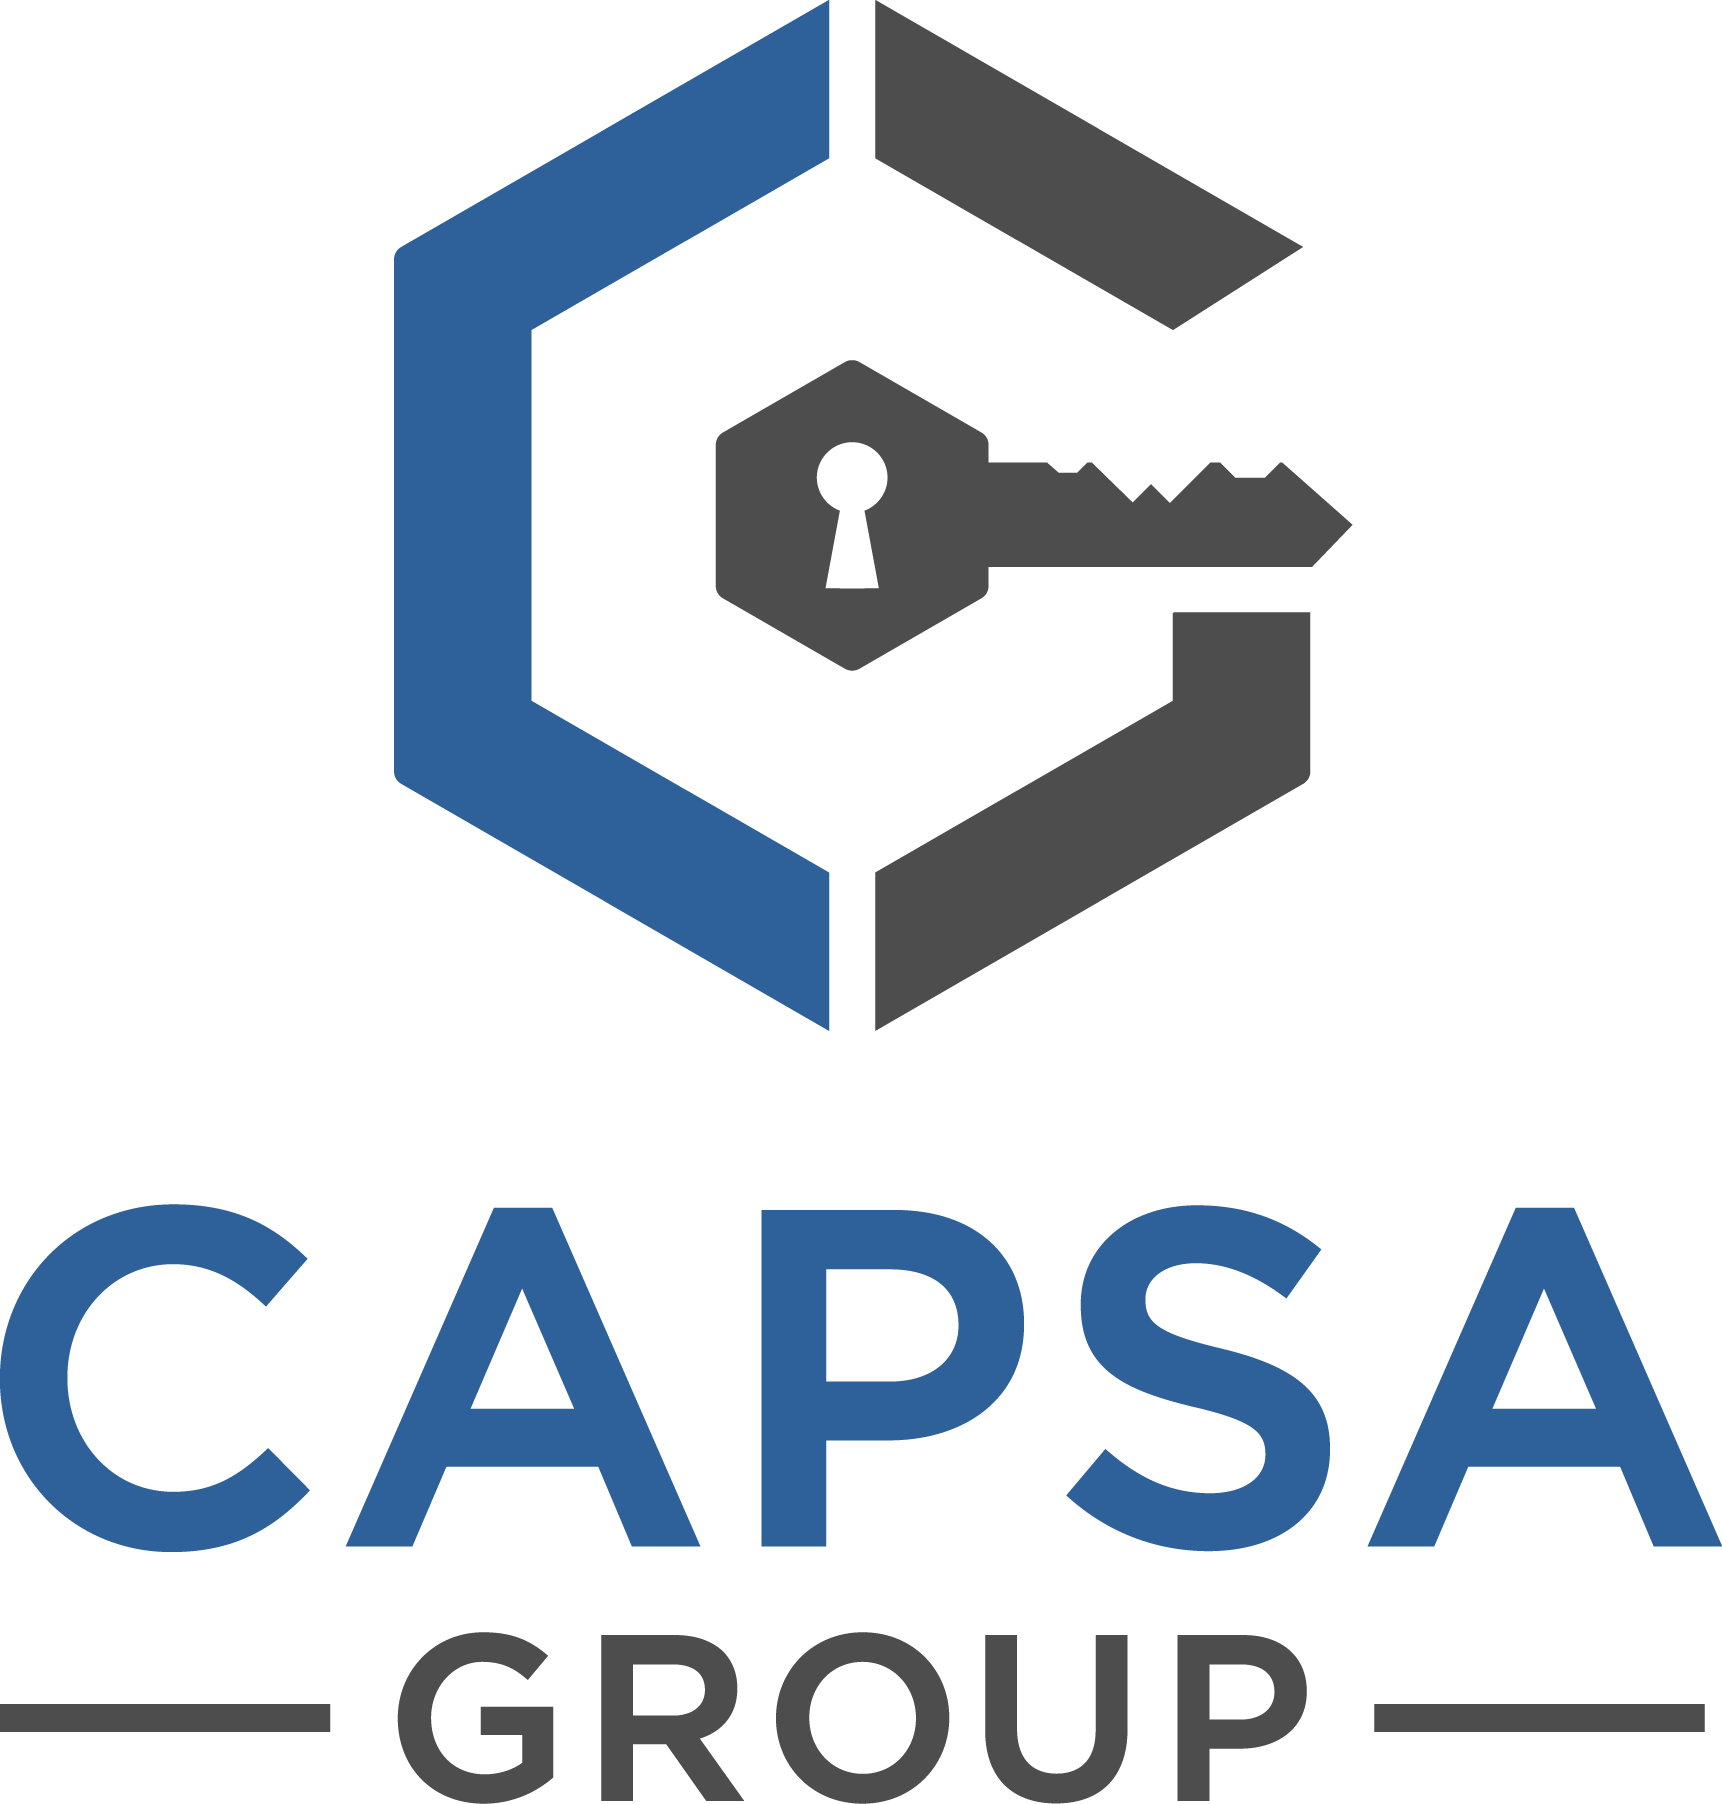 The Capsa Group